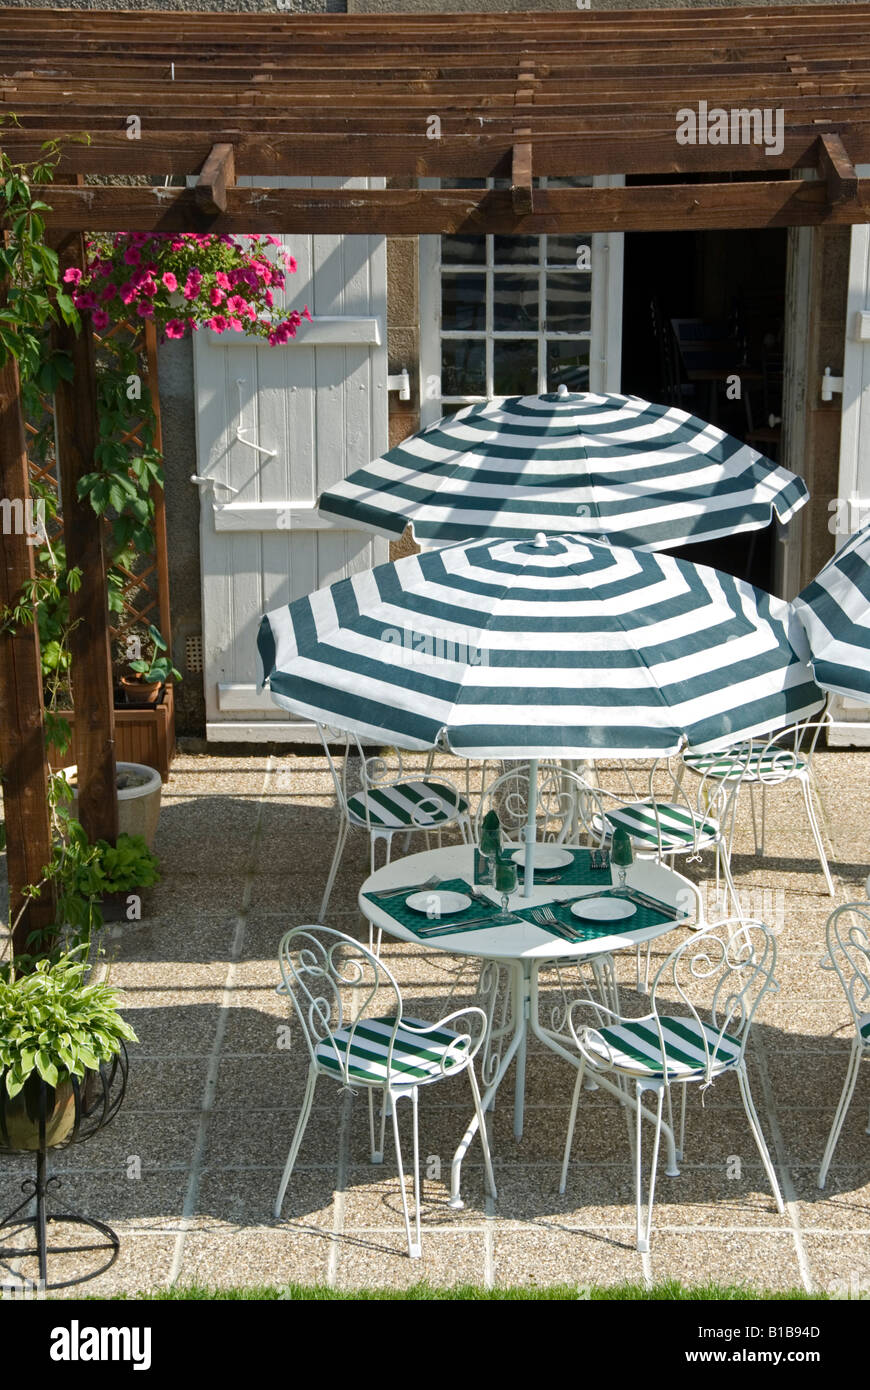 Chambre D Hote Seville Stock Photo Of Restaurant Tables Outside Of A Chambre D Hotes In